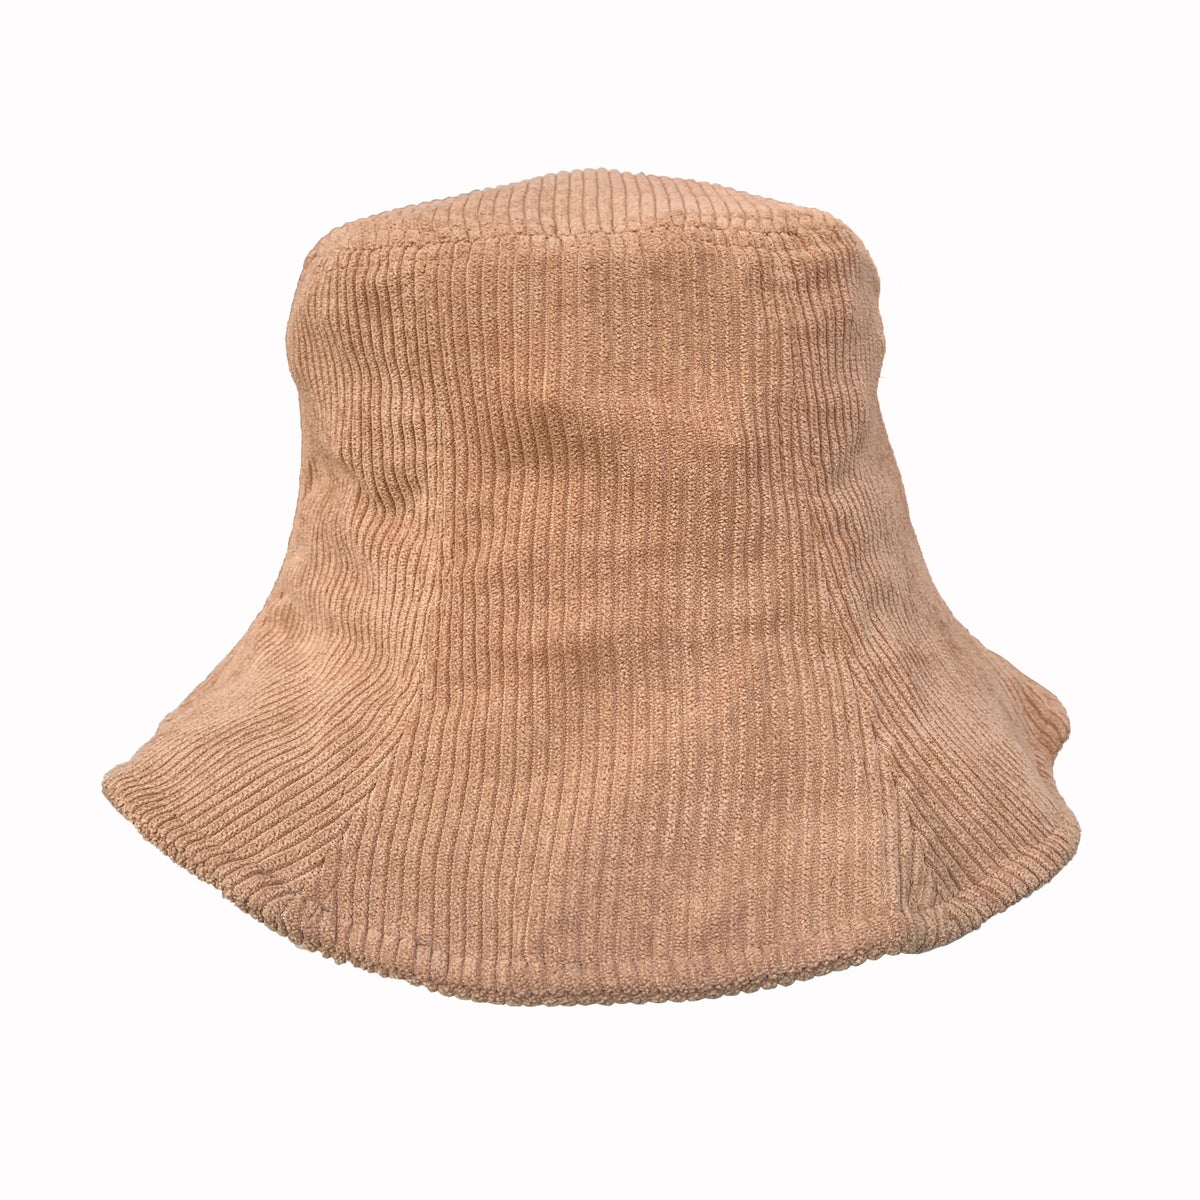 Image of Corduroy Bucket Hat. Sand.